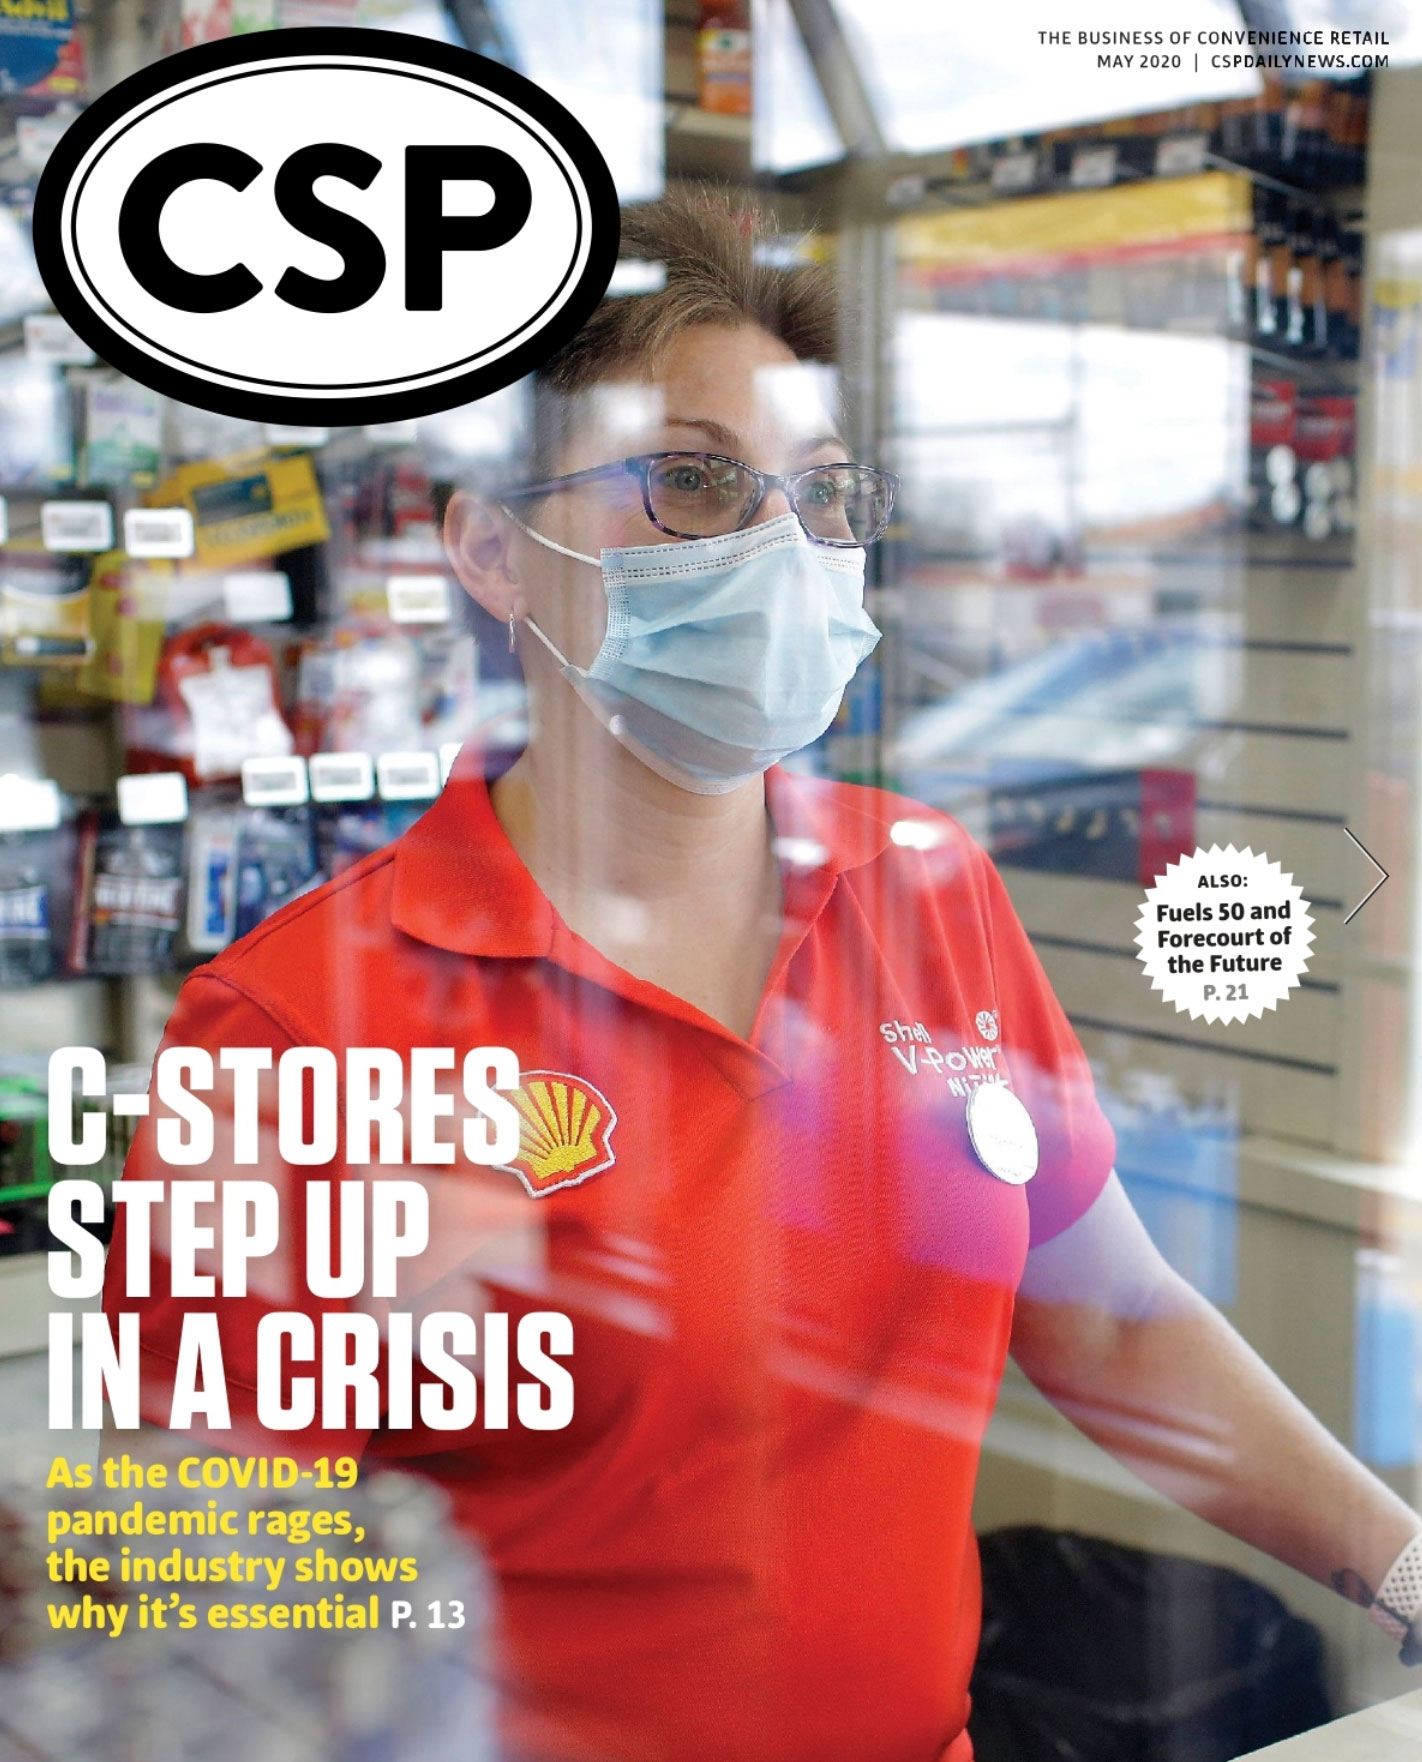 CSP Daily News Magazine C-Stores Step Up In Crisis | May 2020 Issue